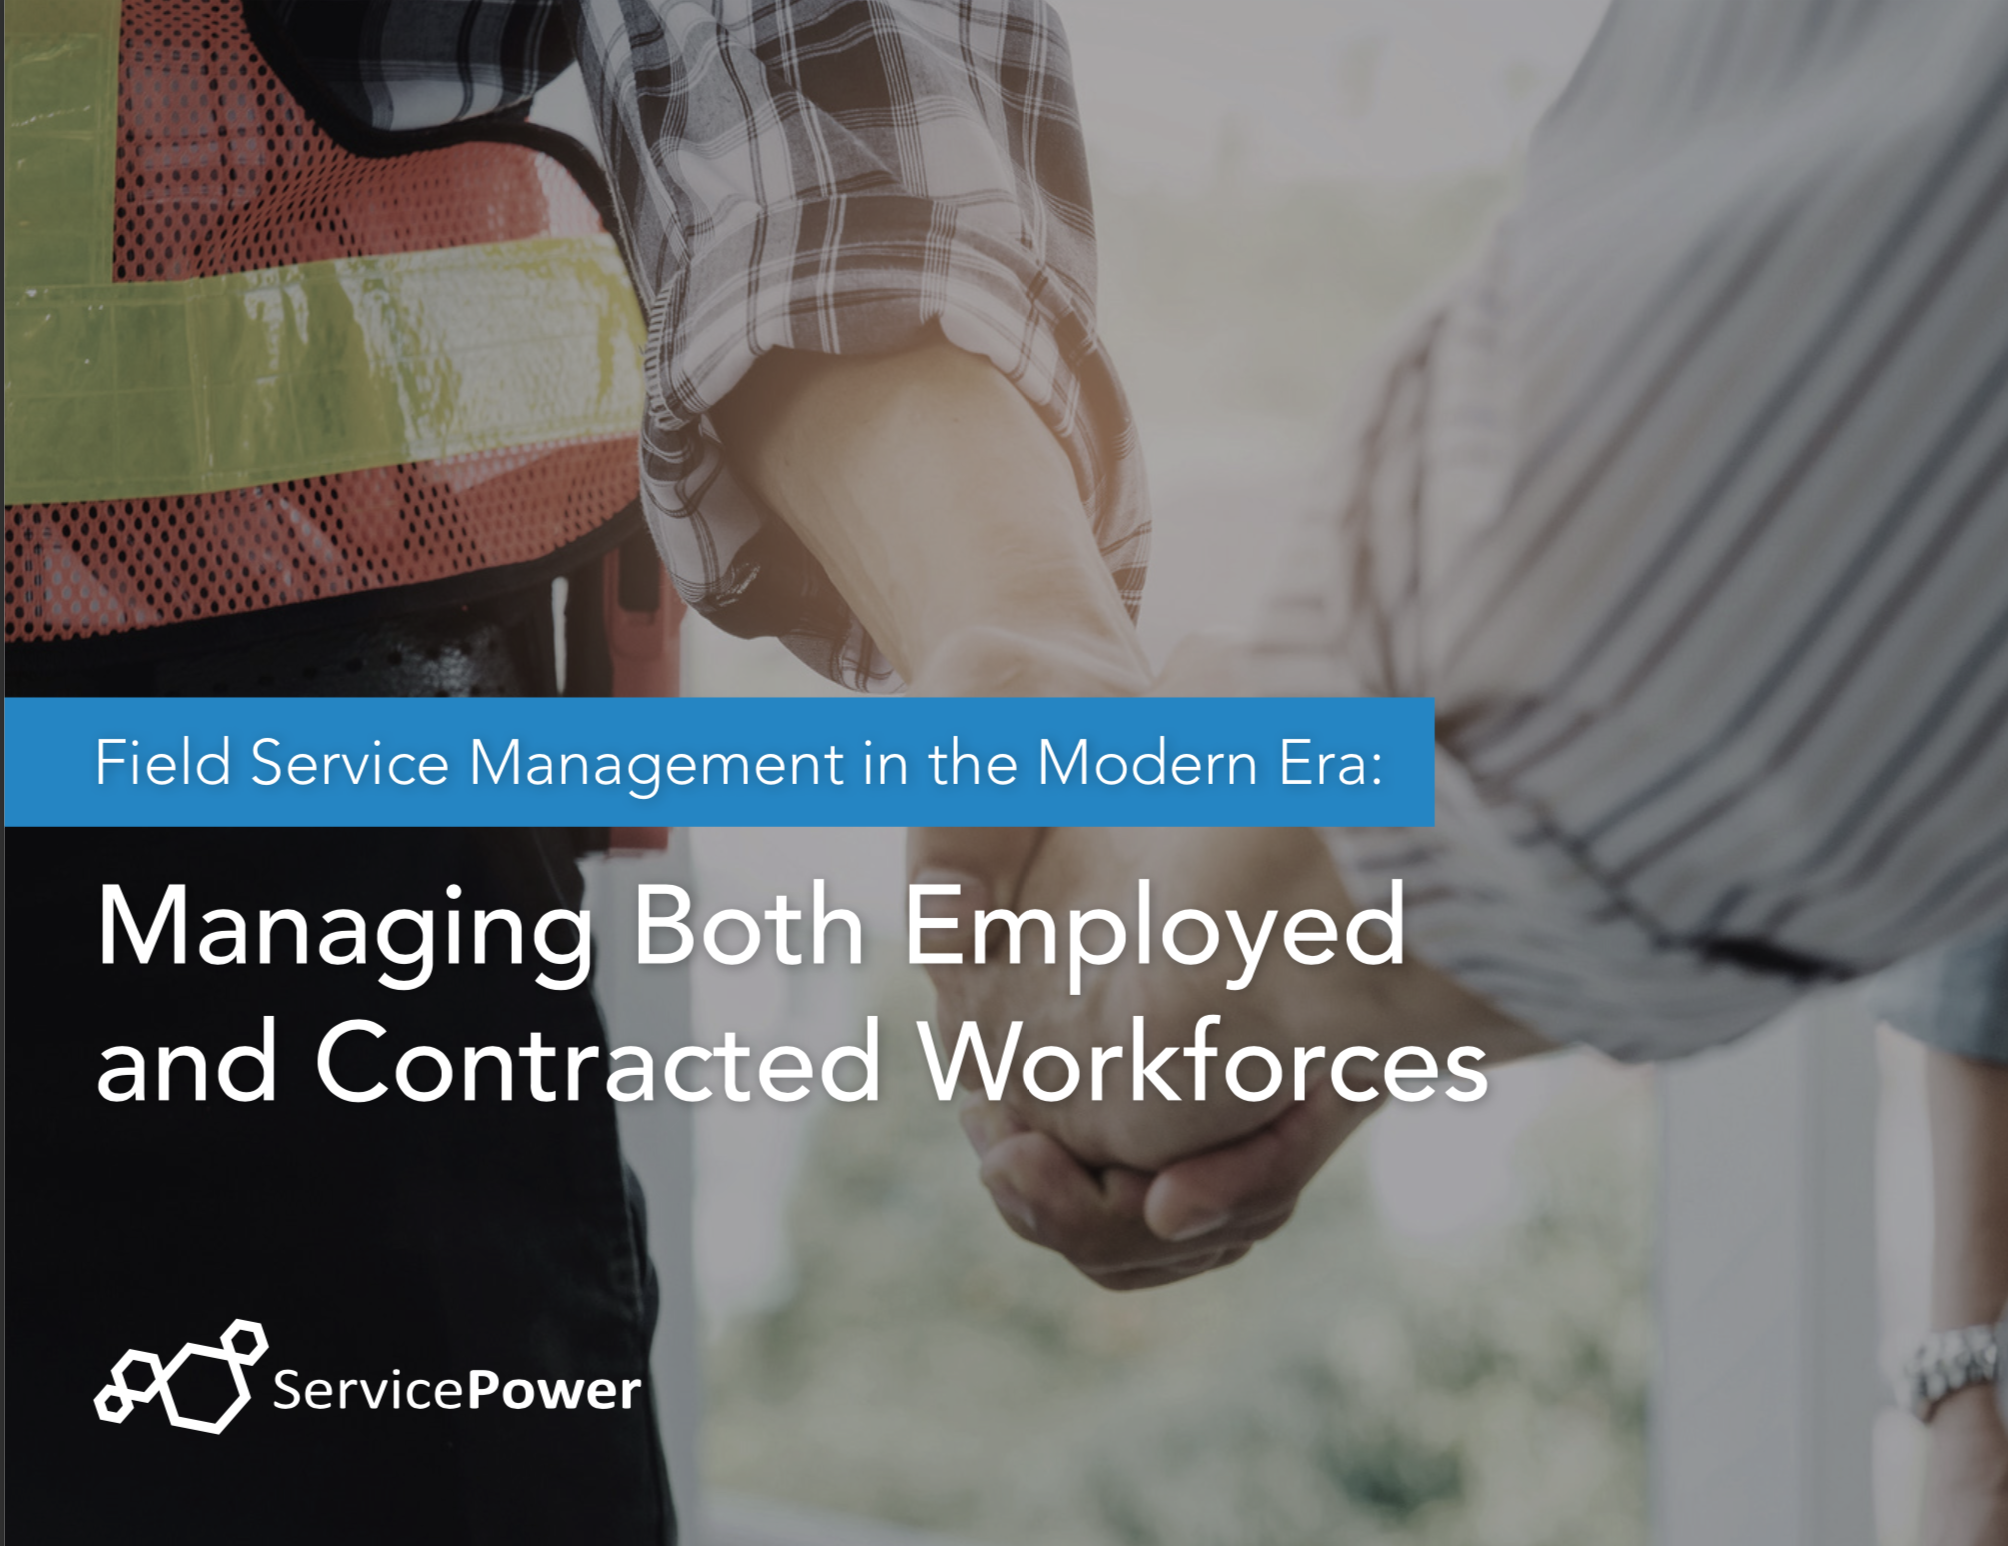 Field Service Management in the Modern Era: Managing Both Employed and Contracted Workforces